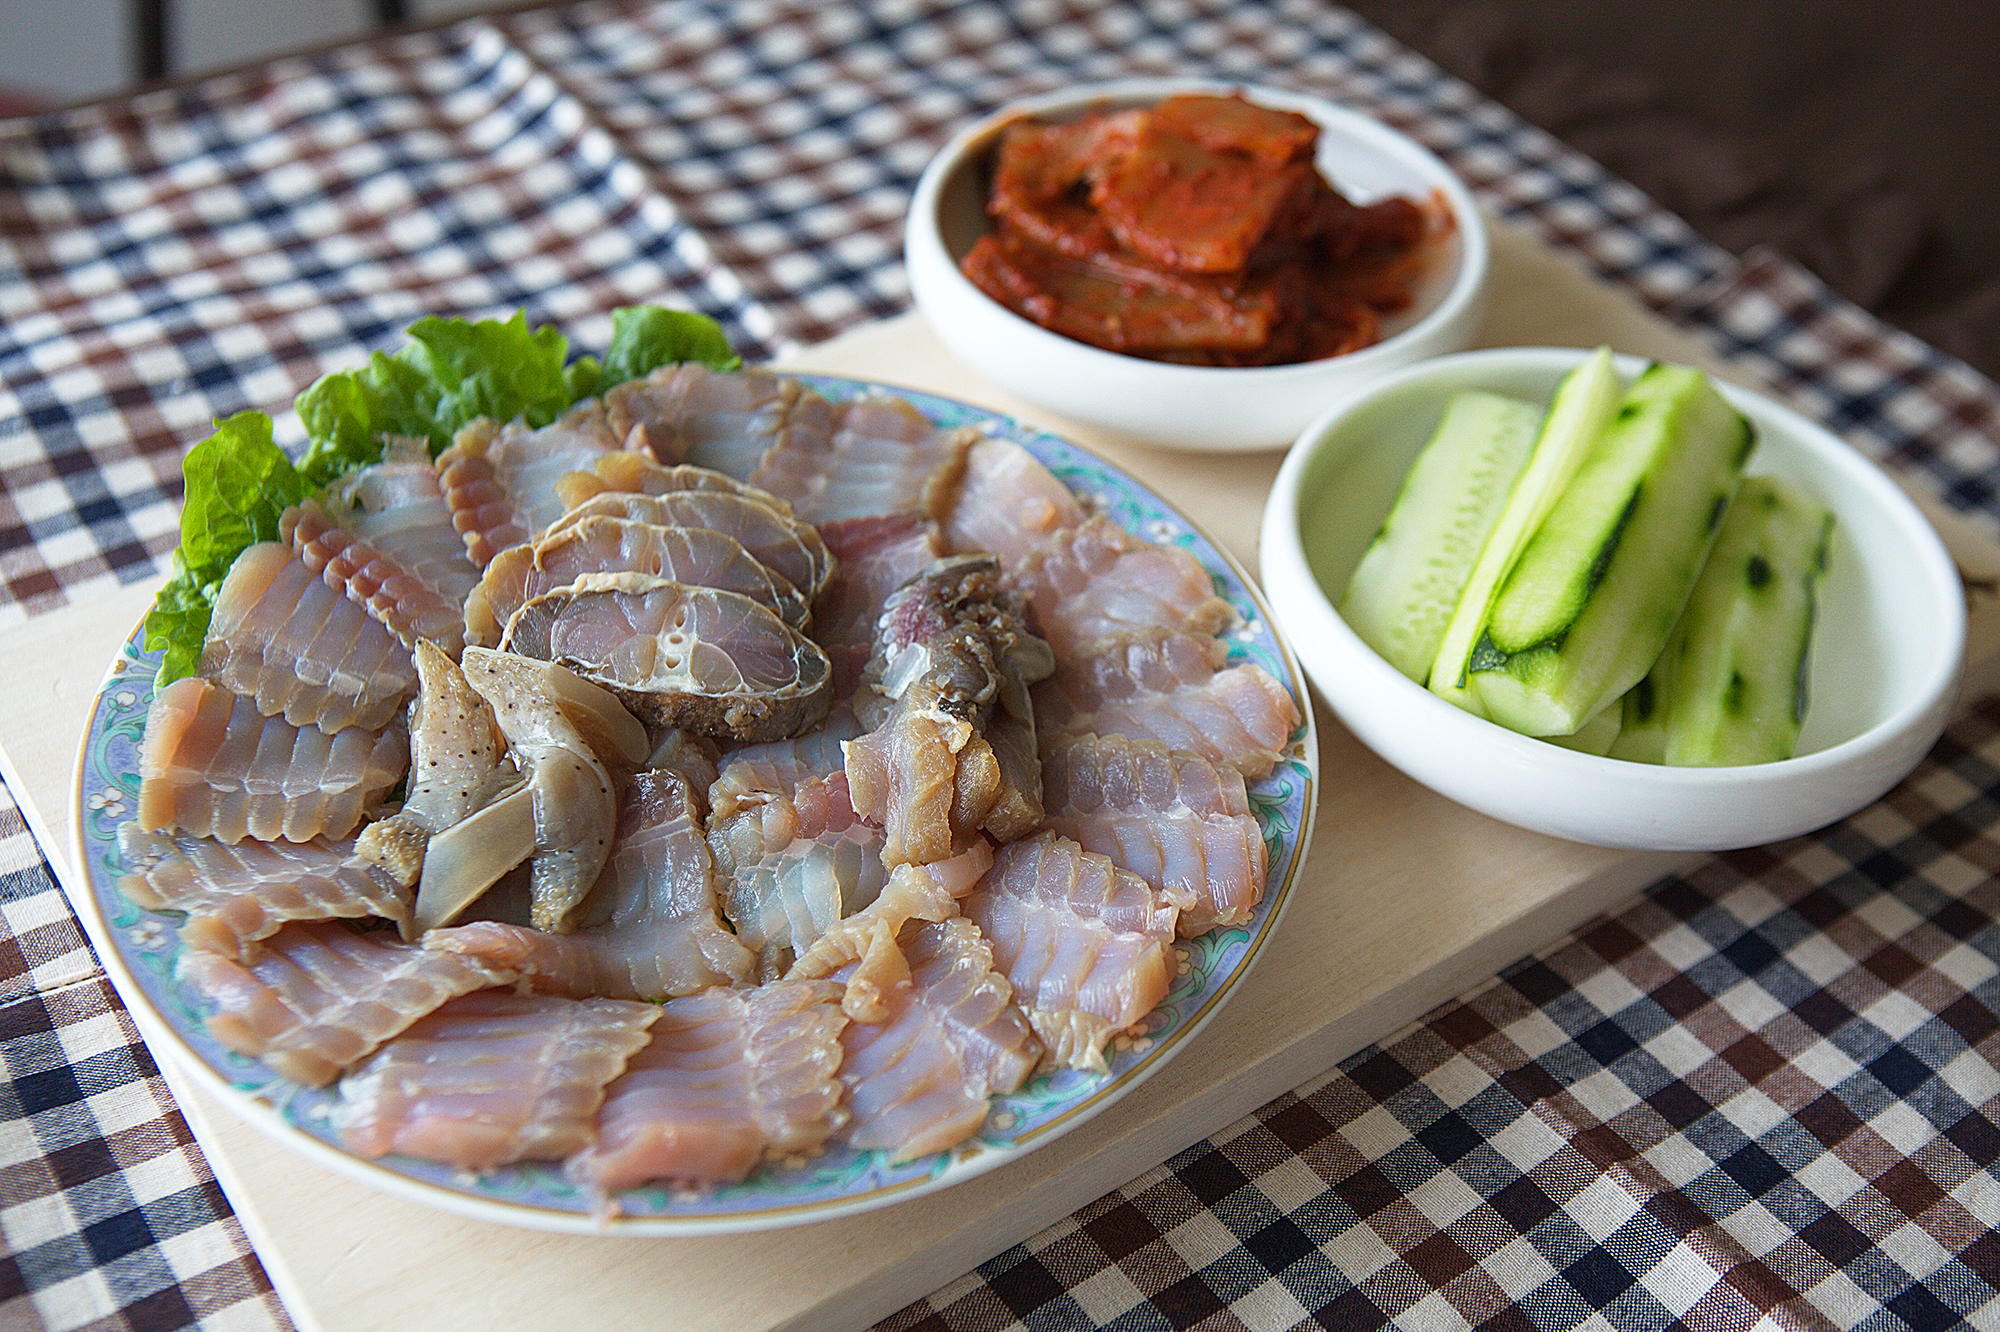 Hold Your Nose And Take A Bite: The Odd Appeal Of A South Korean Fish Dish